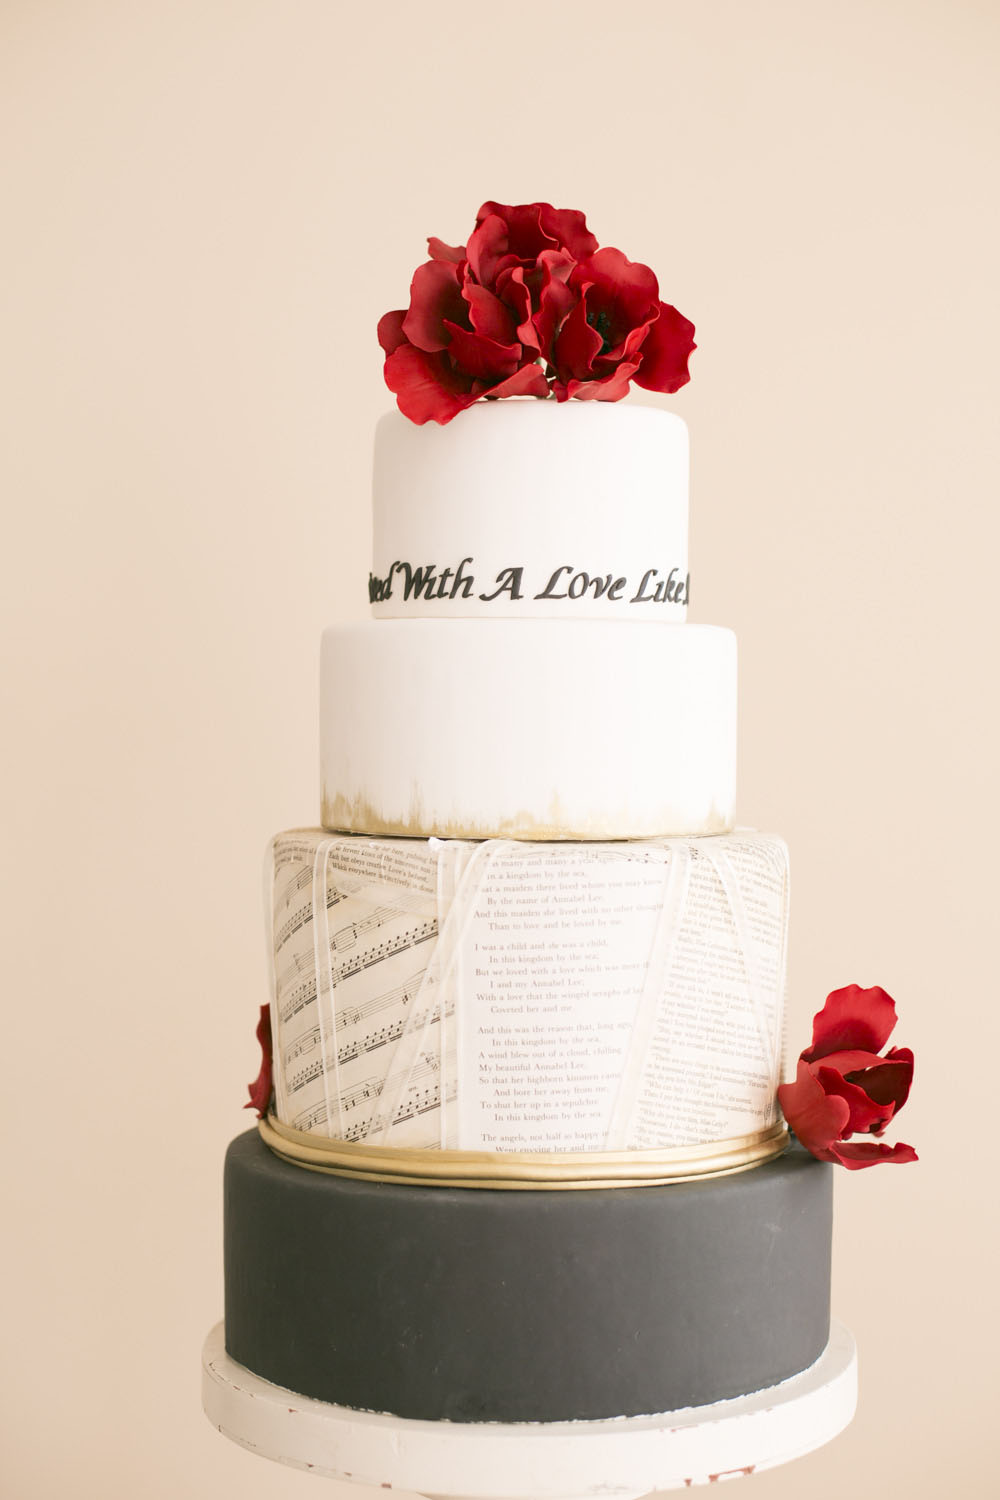 niagara-wedding-cakes-sweet-celebrations-custom-cakes-011.JPG